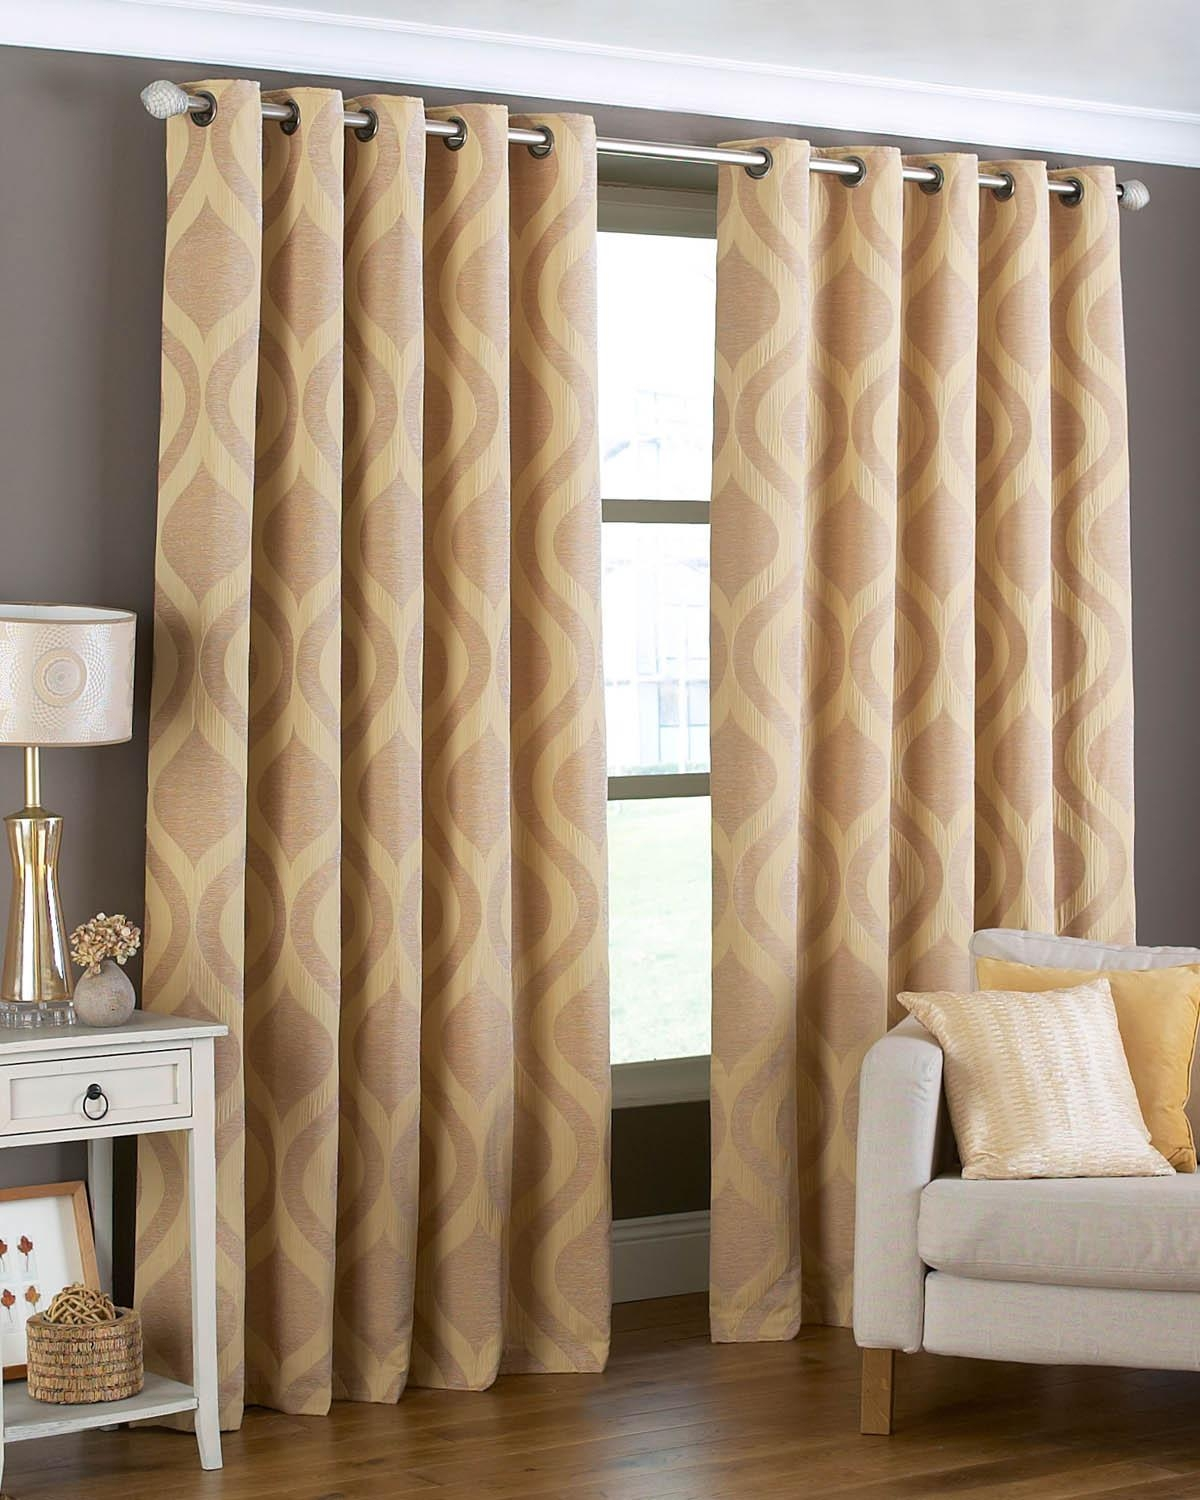 Arch Ready Made Eyelet Curtains Gold Free Uk Delivery Terrys Within Cream And Gold Eyelet Curtains (Image 2 of 15)